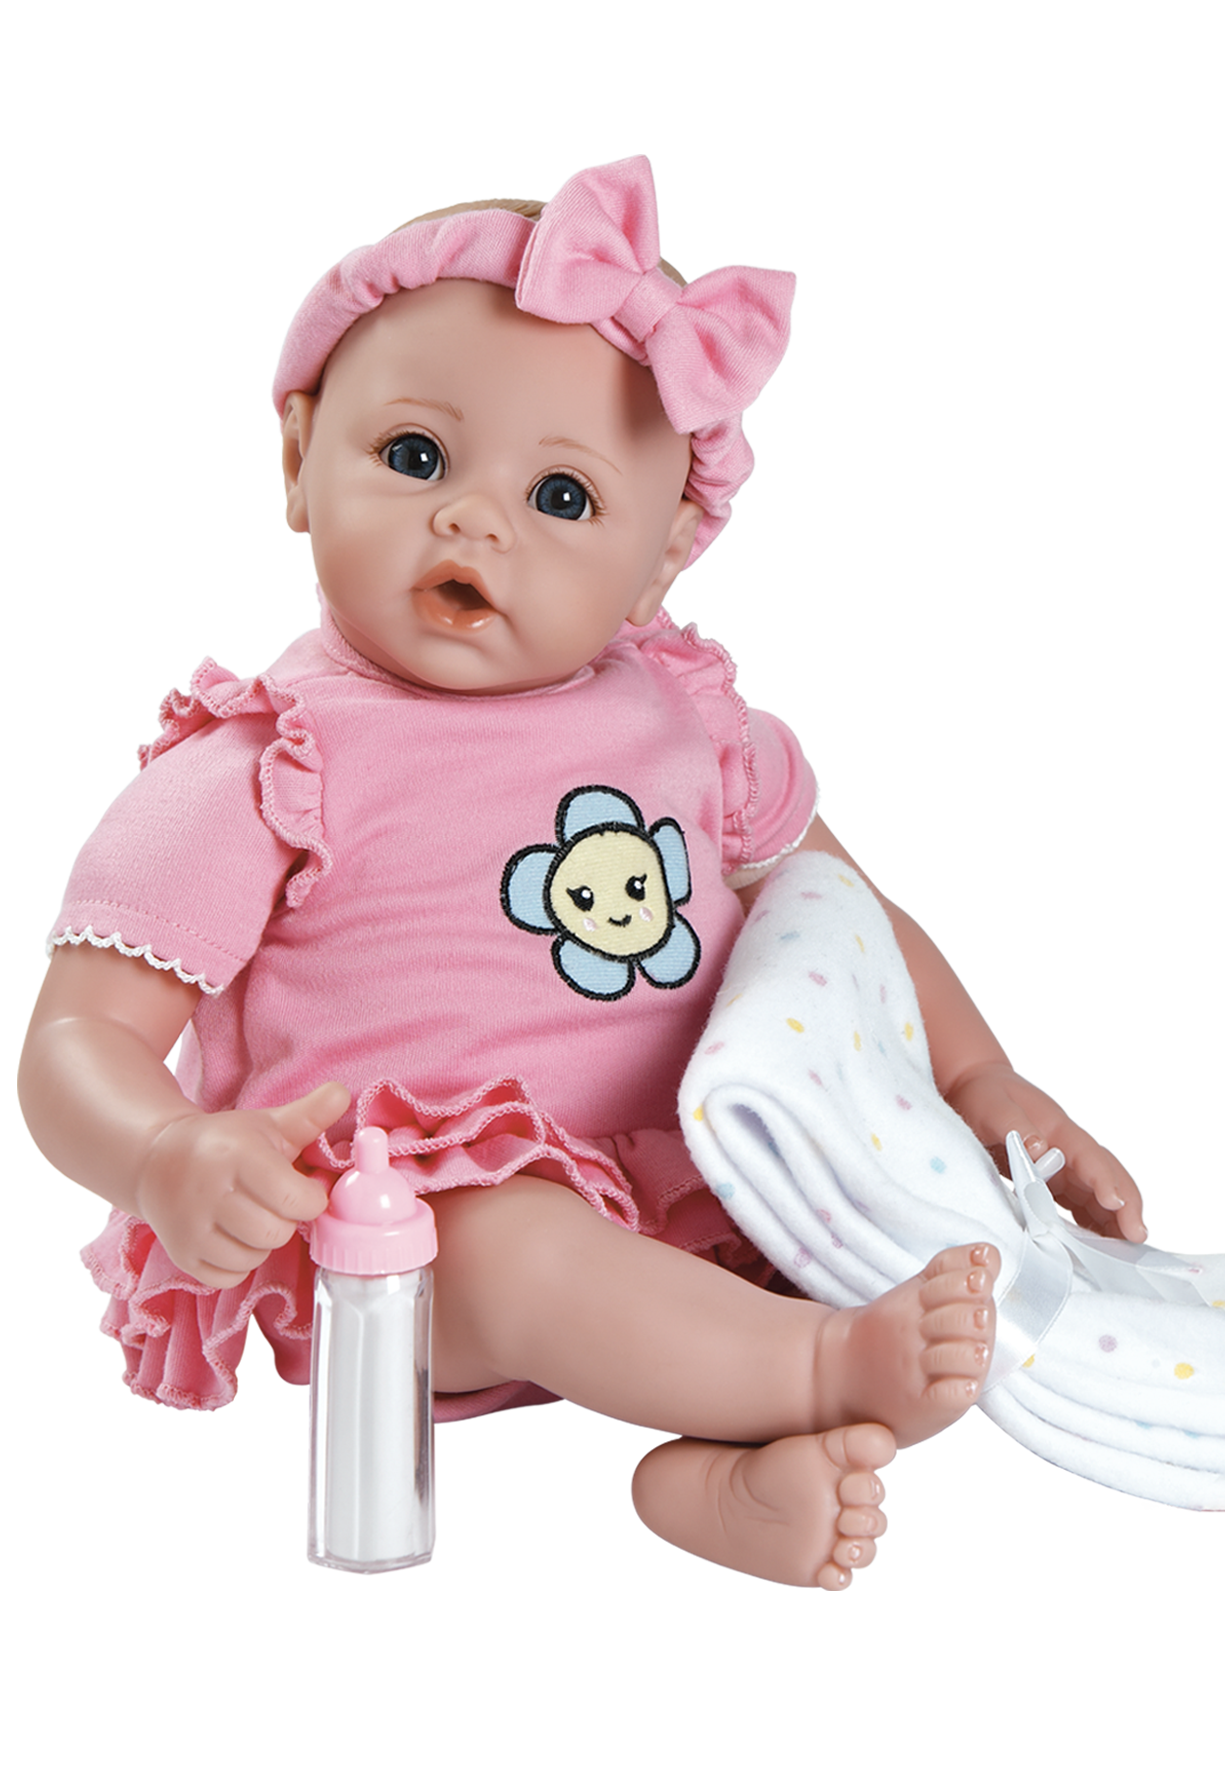 Baby doll png. Adorable girl preemie size